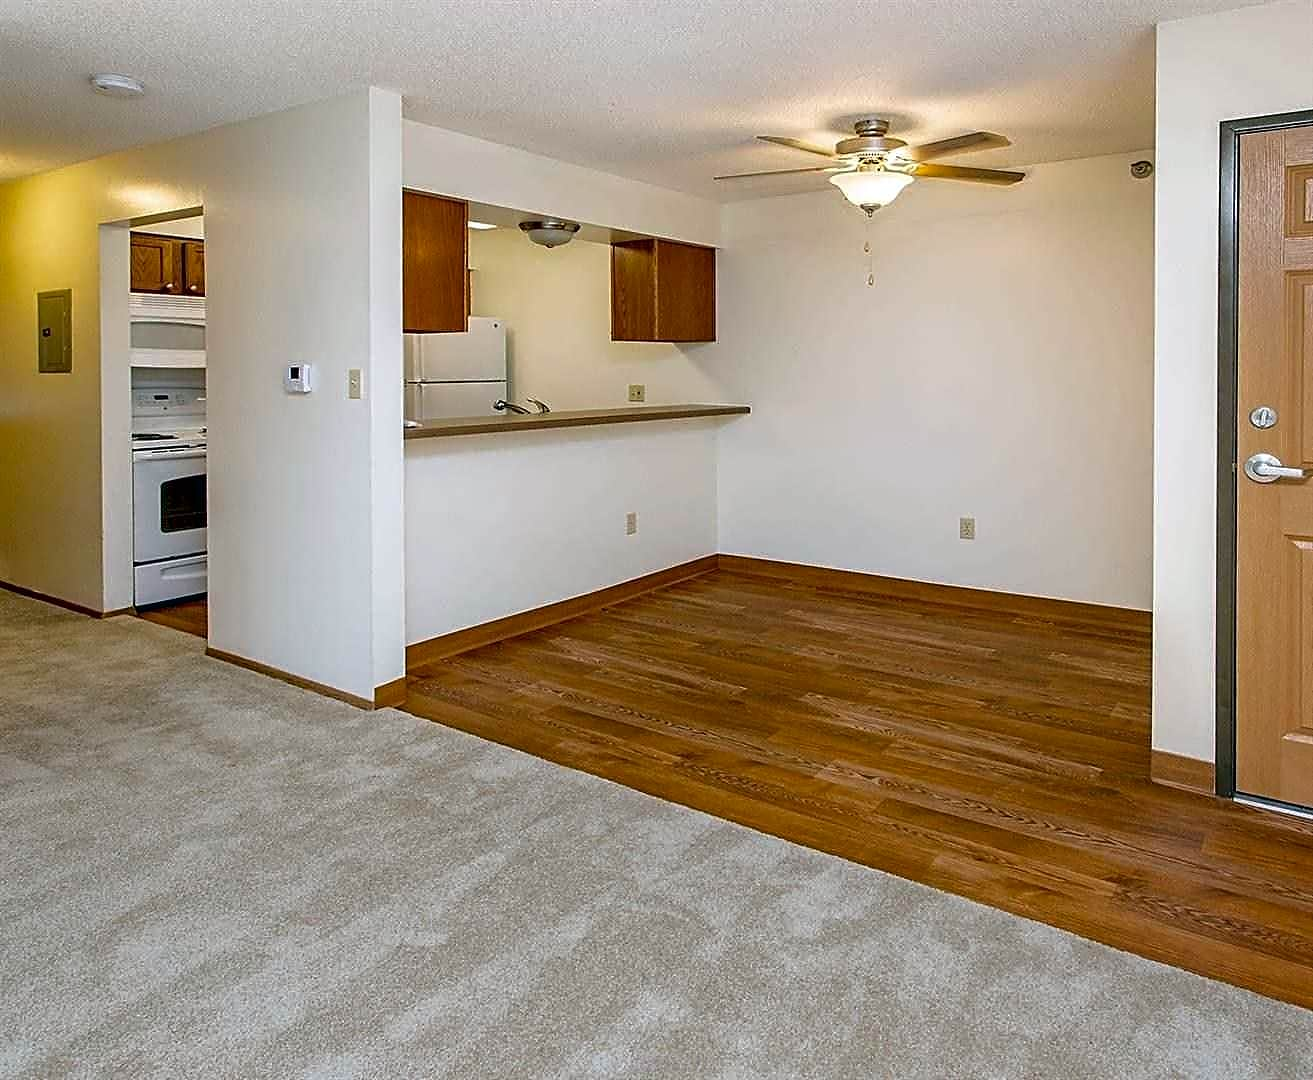 Photo: Des Moines Apartment for Rent - $655.00 / month; 2 Bd & 1 Ba